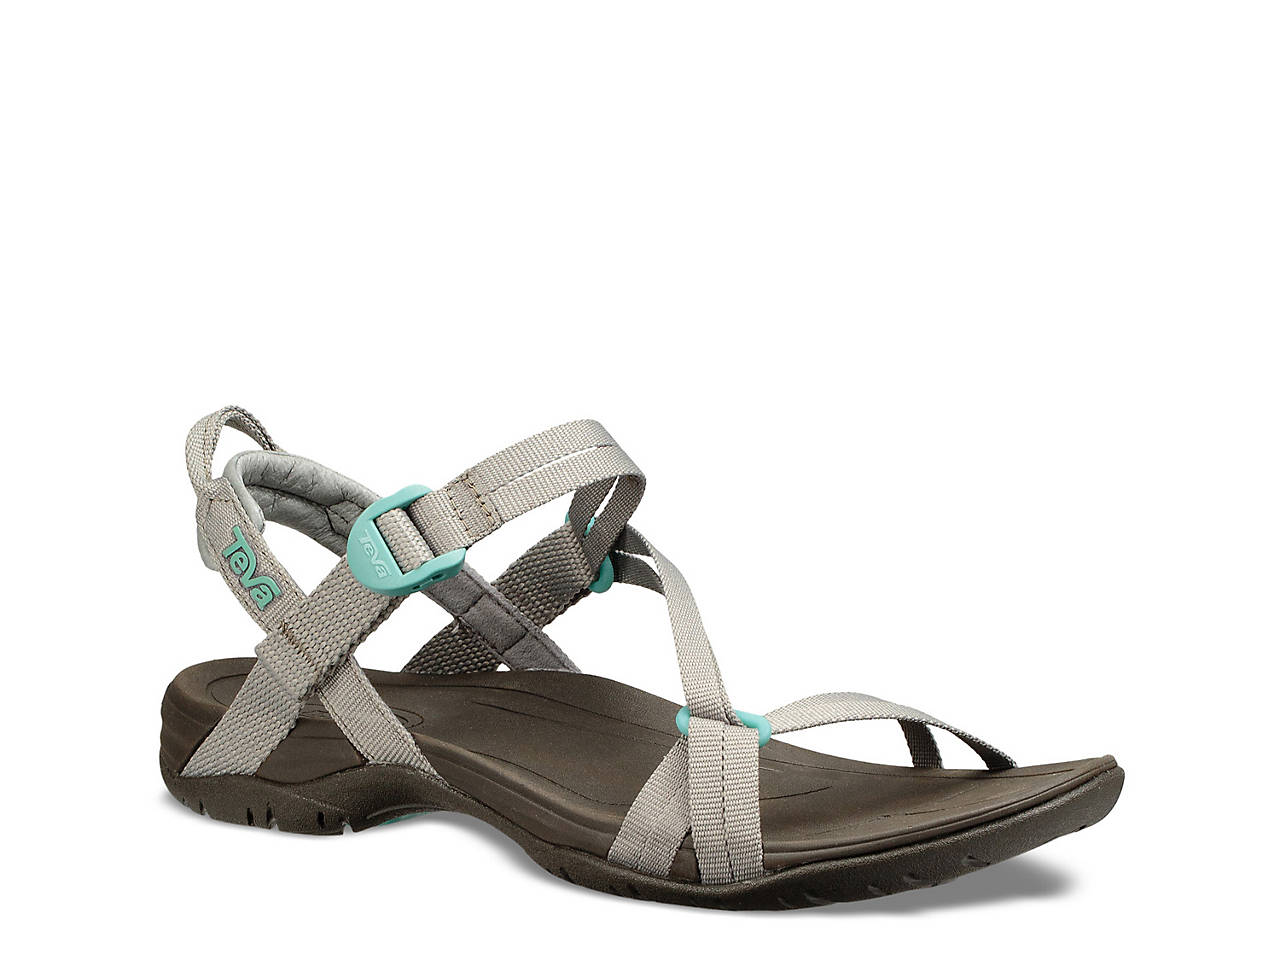 Original Women's Athleti Teva Sandal W's SVqUMpz